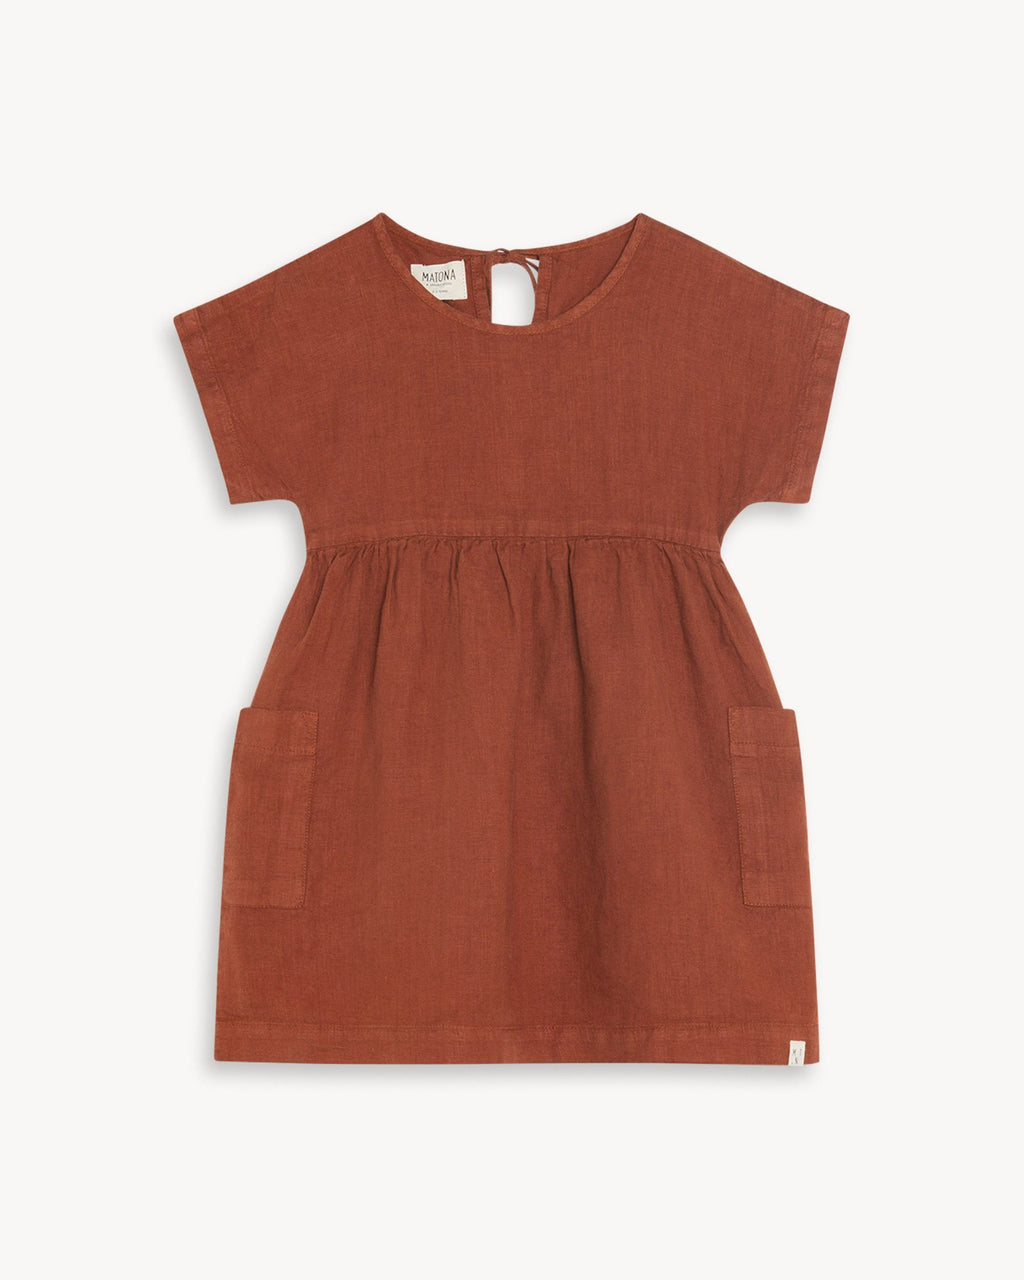 variant_1 | EN Dress Red Brown with Pockets Kids MATONA | DE Kleid Rot Braun mit Taschen Kinder MATONA